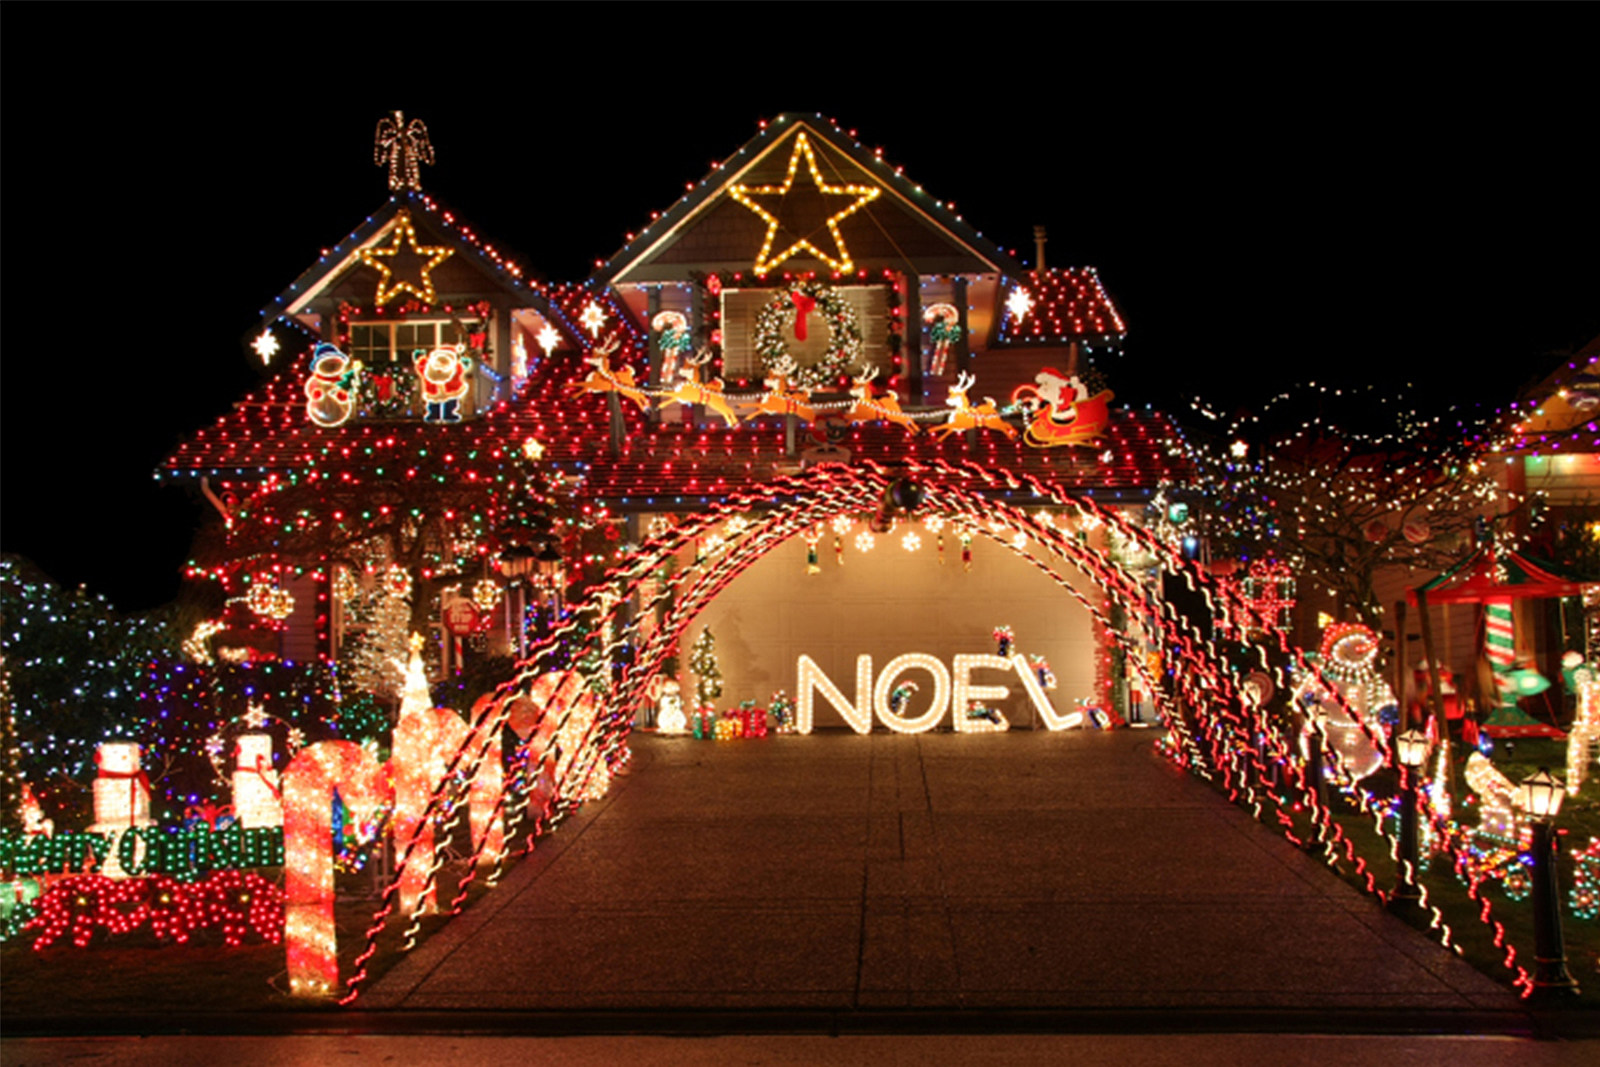 Christmas Lights 2020 Cedar Rapids Iowa Where To See The Best Christmas Light Displays in Iowa